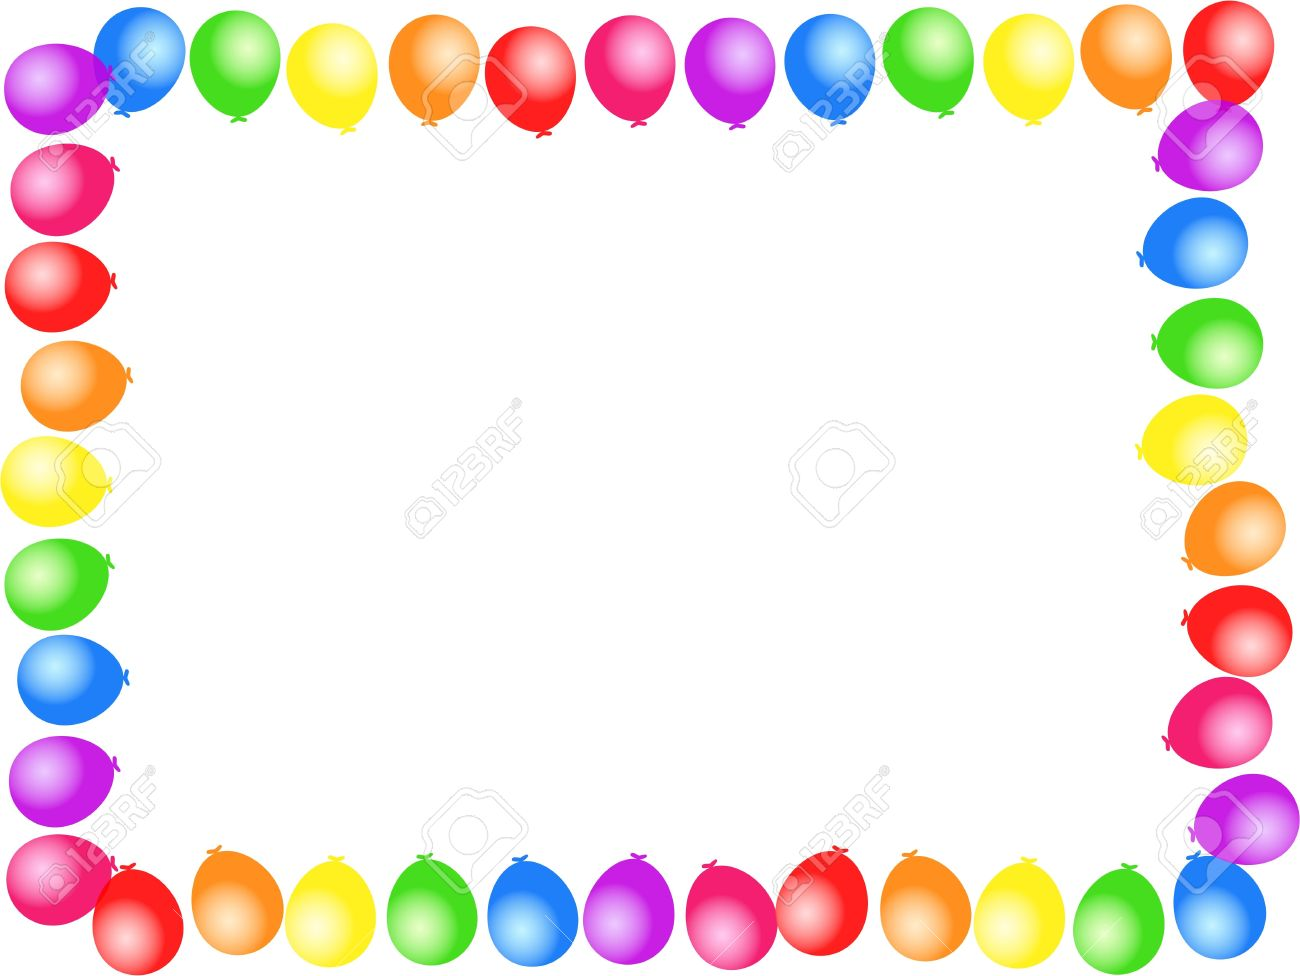 free birthday border designs ; 4592723-colourful-birthday-party-balloon-page-border-design-